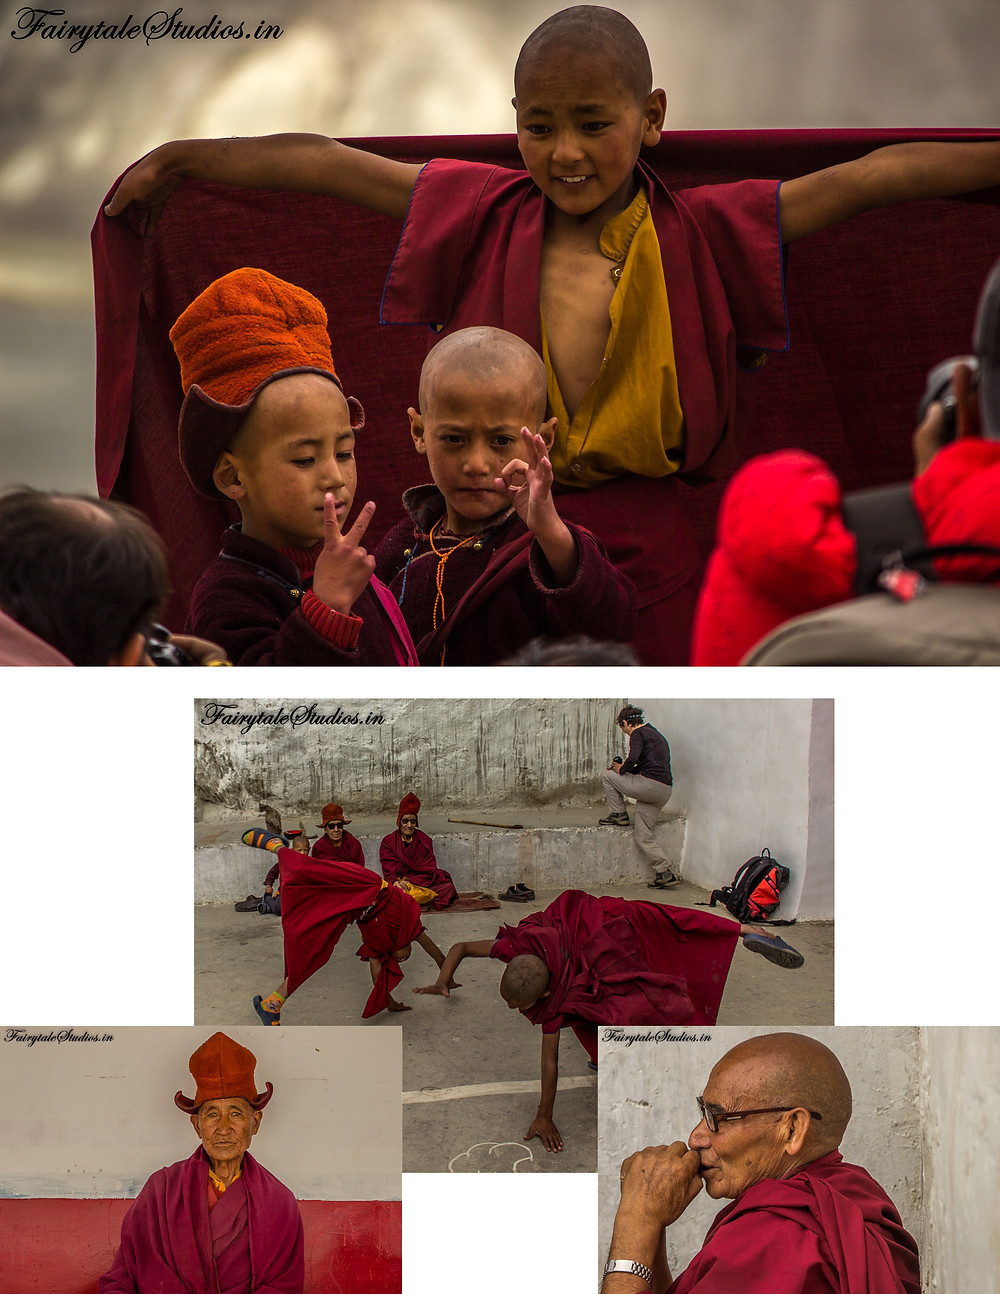 Child monks playing and posing for us as older monks watch in amusement (The Zanskar Odyssey Travelogue)